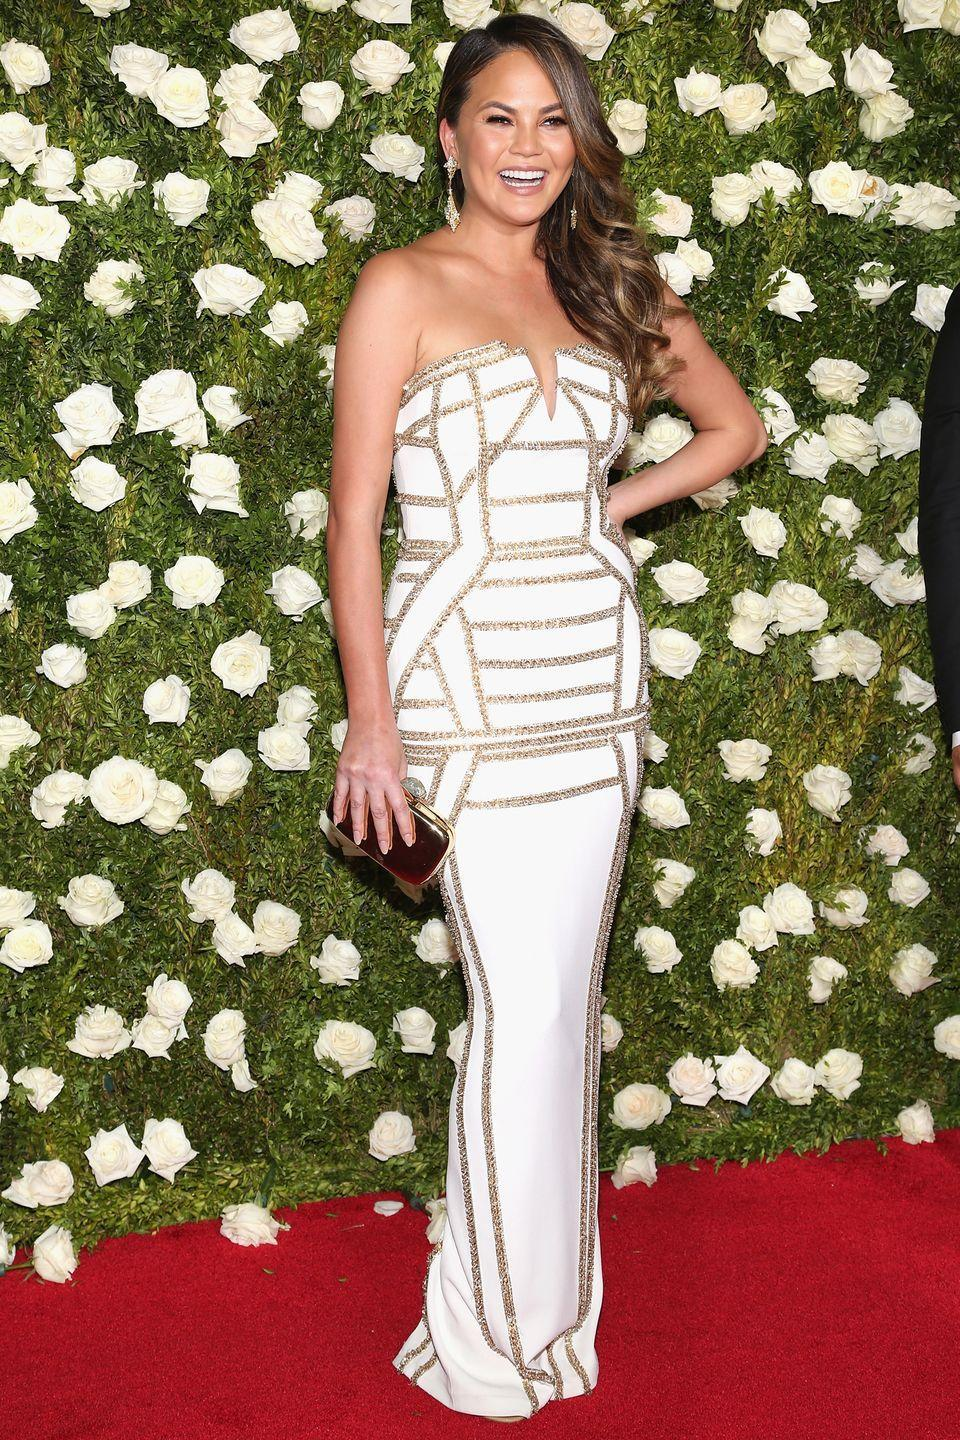 """<p>""""I had an armpit sucked out, which was one of the best things,"""" Teigen told <a href=""""http://www.refinery29.com/2017/05/153132/chrissy-teigen-liposuction-confession"""" rel=""""nofollow noopener"""" target=""""_blank"""" data-ylk=""""slk:Refinery29"""" class=""""link rapid-noclick-resp"""">Refinery29</a> in May 2017. """"It's a big secret, but I don't care. It was nine years ago or so. And I had two inches to my armpit. Now it's back though, so now I've gotta pay for [liposuction] again. It was so easy. It made me feel better in dresses, I felt more confident. It was the dumbest, stupidest thing I've ever done. The dumbest, but I like it, whatever. I have no regrets, honestly.""""</p><p>In 2019, Teigen also announced via an Instagram post that she would be <a href=""""https://www.harpersbazaar.com/celebrity/latest/a32683955/chrissy-teigen-coronavirus-test-responded-to-criticism-twitter/"""" rel=""""nofollow noopener"""" target=""""_blank"""" data-ylk=""""slk:removing her breast implants"""" class=""""link rapid-noclick-resp"""">removing her breast implants</a>. """"They've been great to me for many years but I'm just over it. I'd like to be able to zip a dress in my size, lay on my belly with pure comfort! No biggie!"""" she explained. """"So don't worry about me! All good. I'll still have boobs, they'll just be pure fat. Which is all a tit is in the first place. A dumb, miraculous bag of fat.""""</p>"""